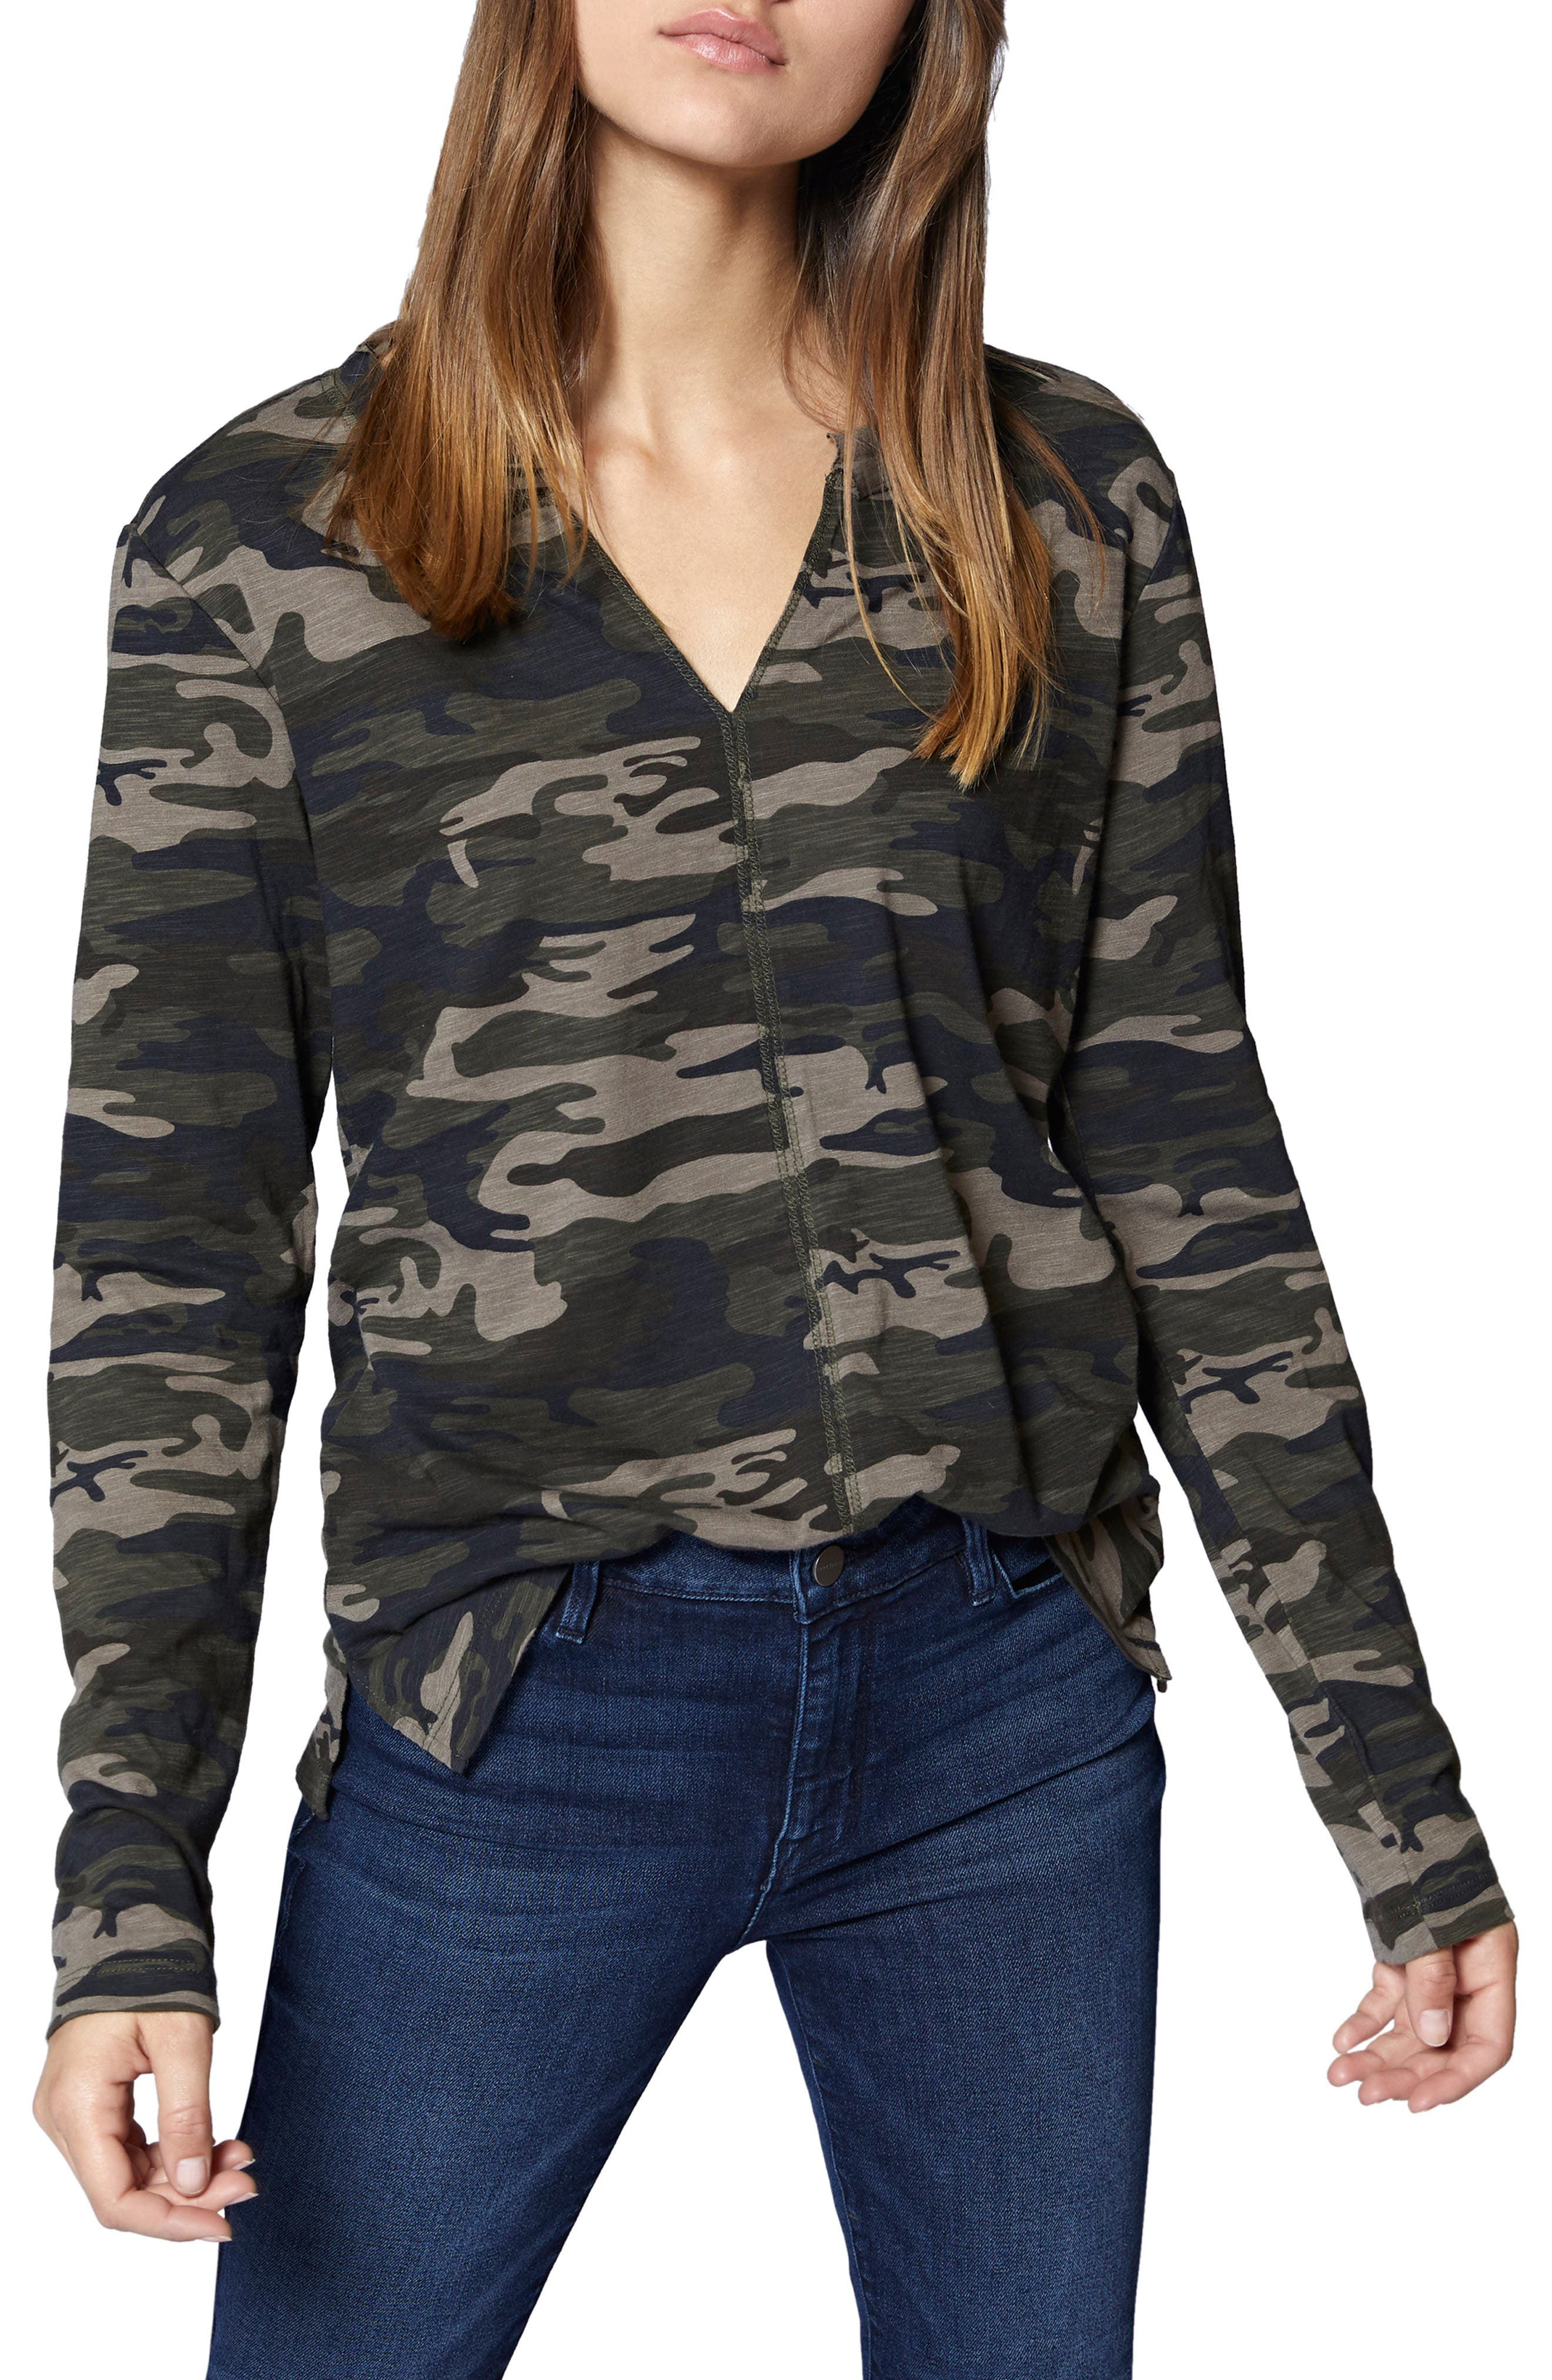 Ives Long Sleeve Camo Tee,                             Main thumbnail 1, color,                             HUMAN NATURE CAMO